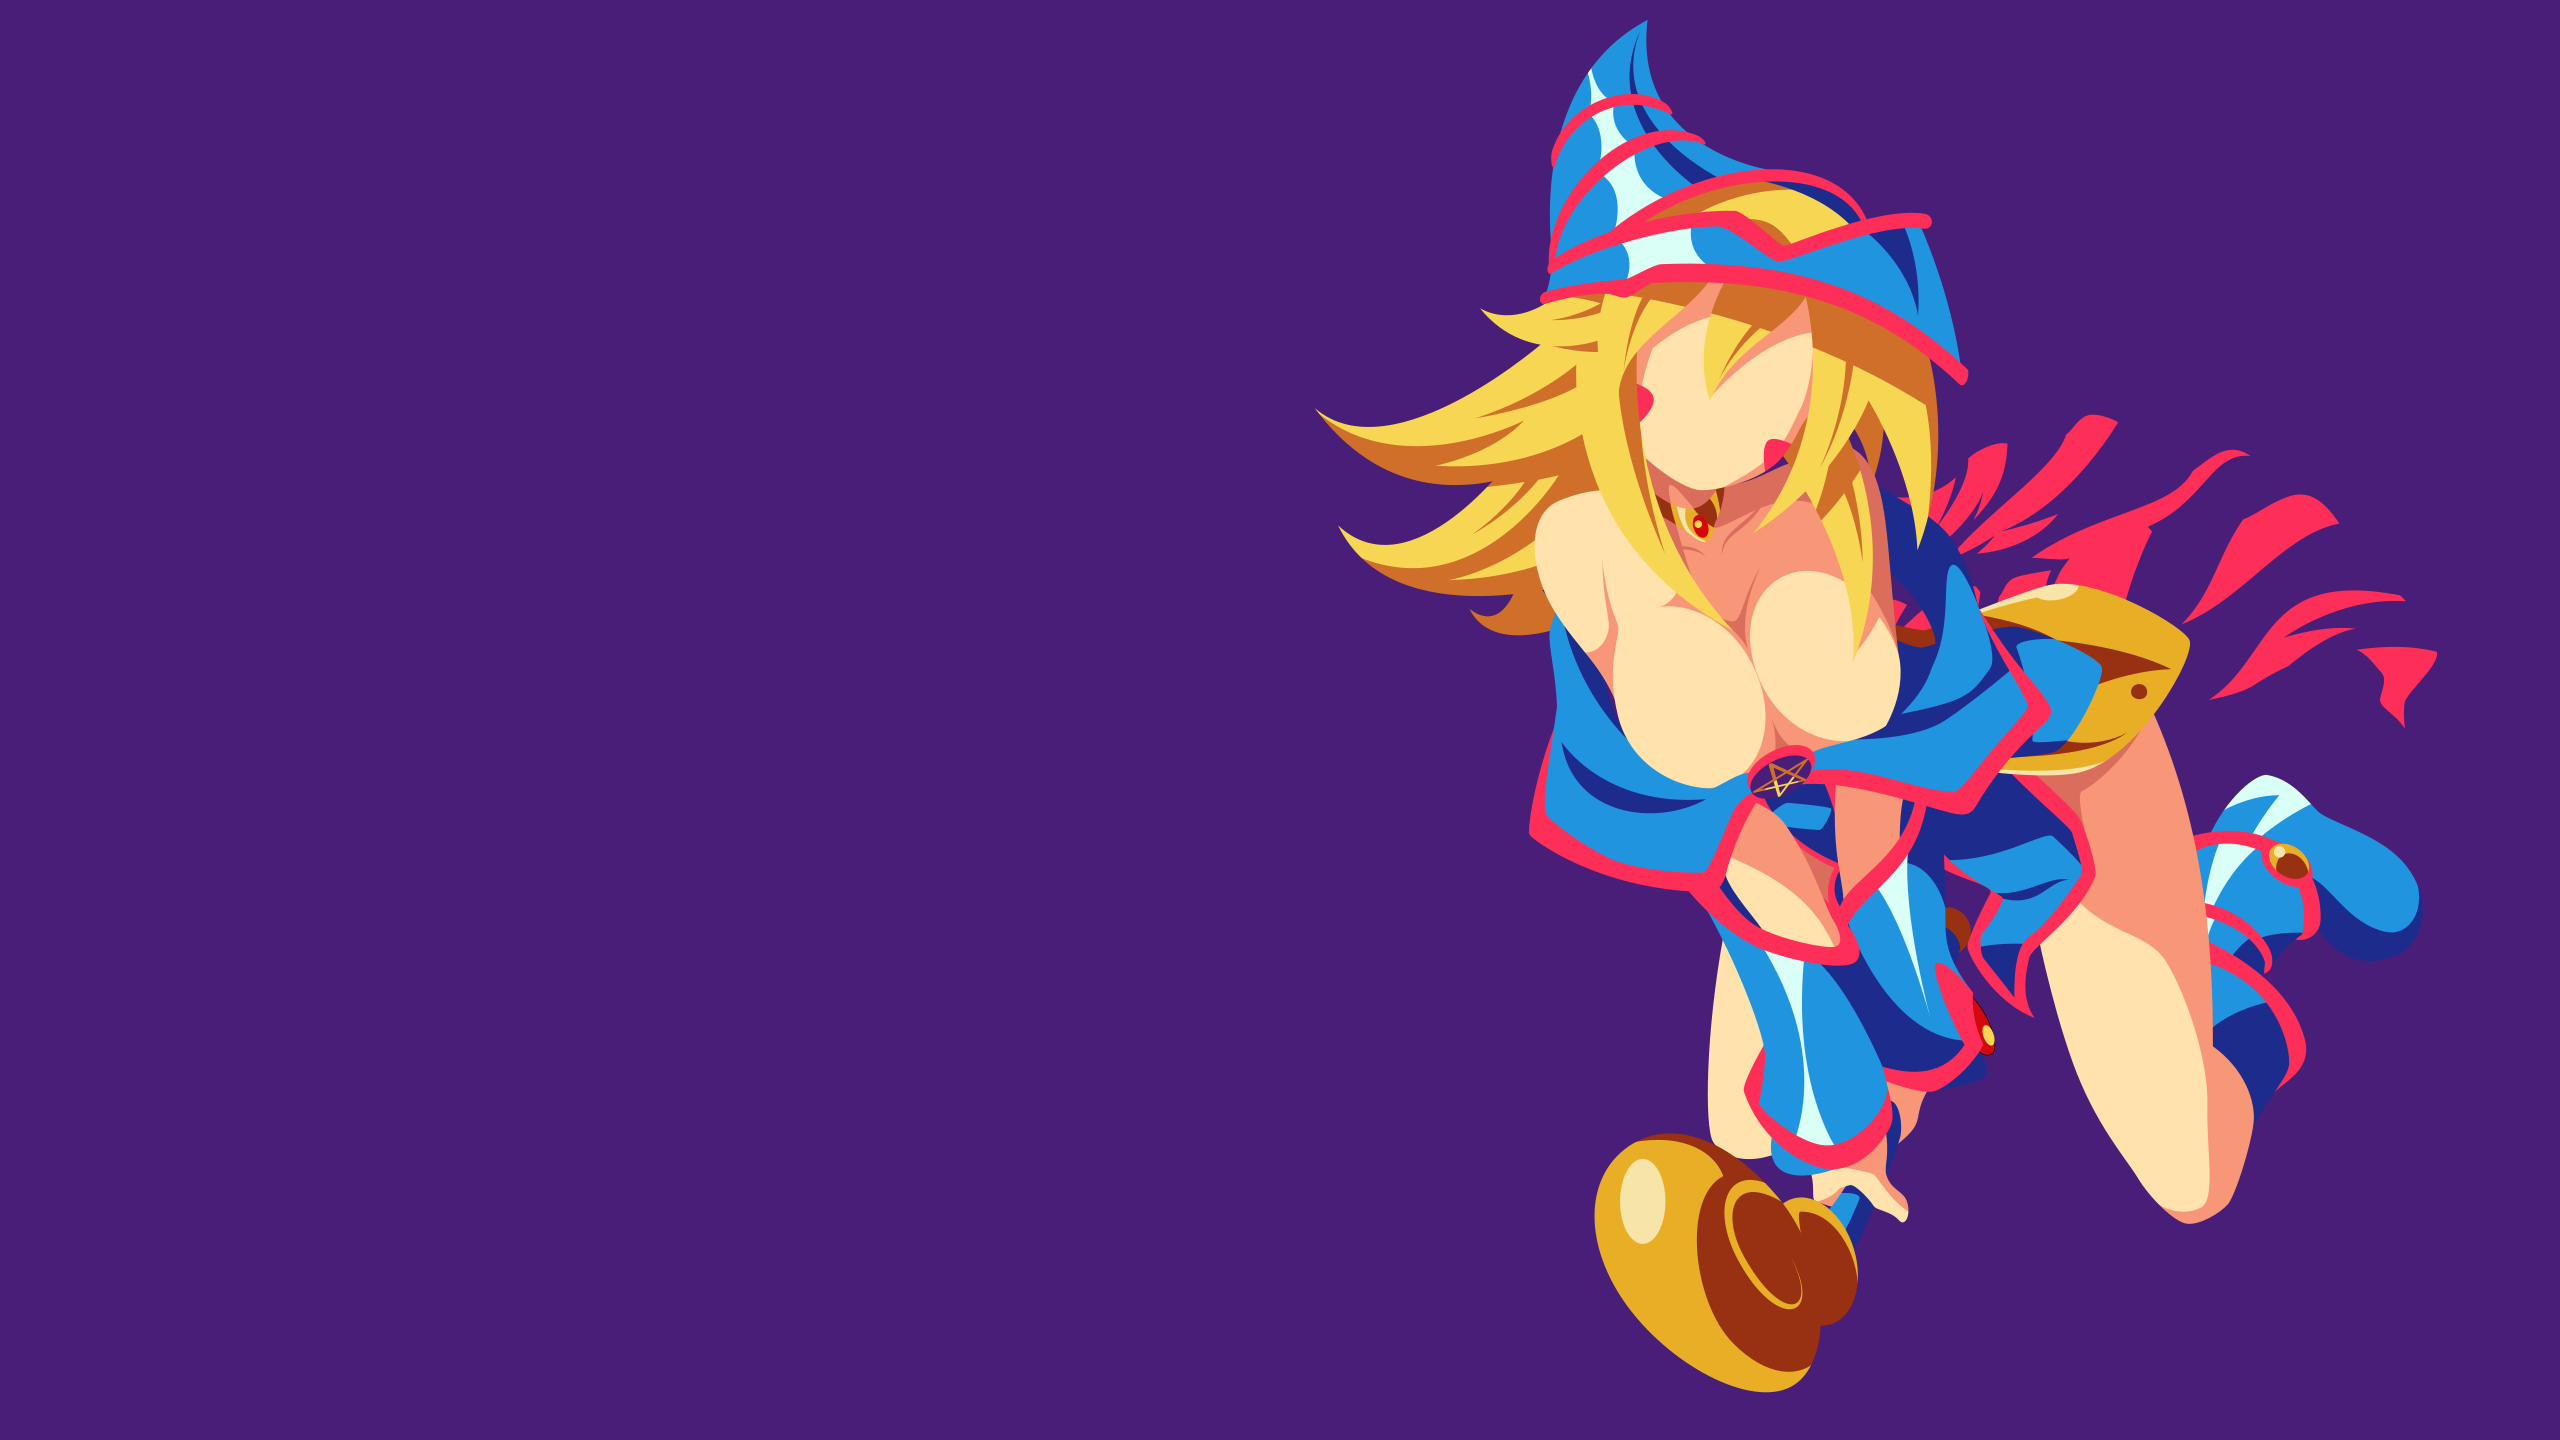 Free Download Yugioh Dark Magician Girl Minimalism Wallpaper By 2560x1440 For Your Desktop Mobile Tablet Explore 73 Dark Magician Wallpaper Dark Demon Wallpaper Yu Gi Oh Dark Magician Wallpaper